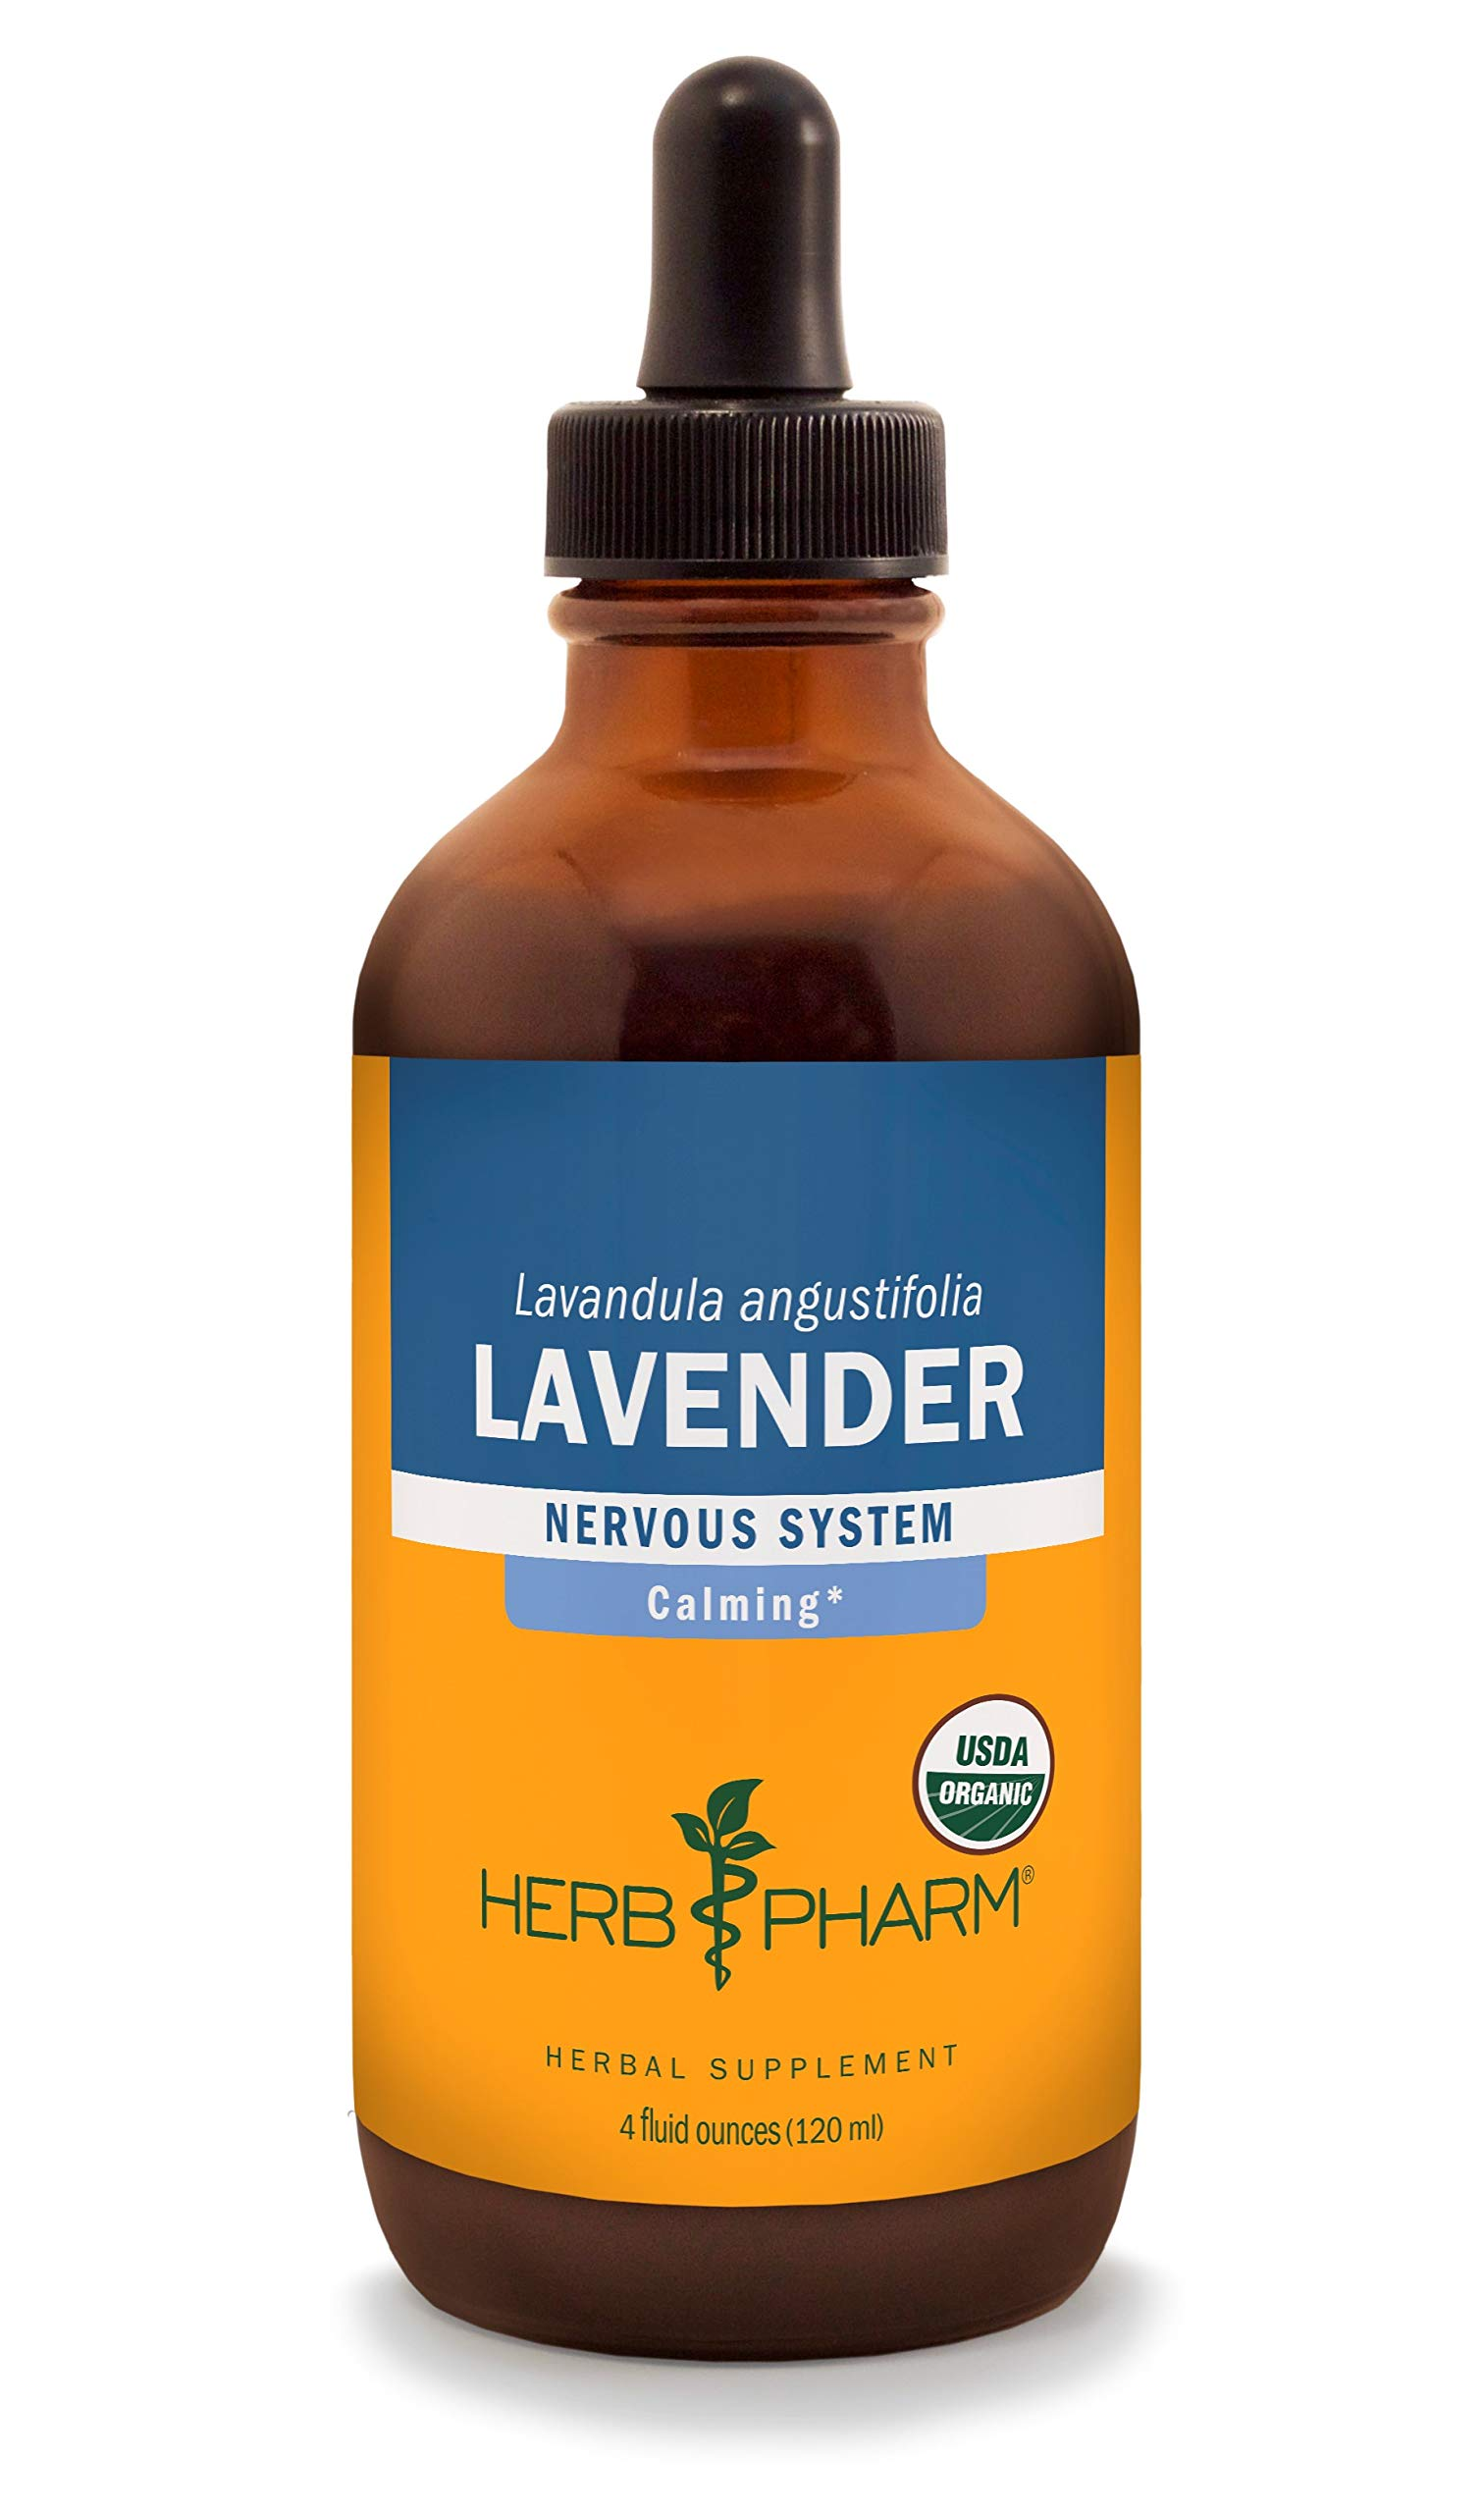 Herb Pharm Certified Organic Lavender Flower Liquid Extract for Calming Nervous System Support - 4 Ounce by Herb Pharm